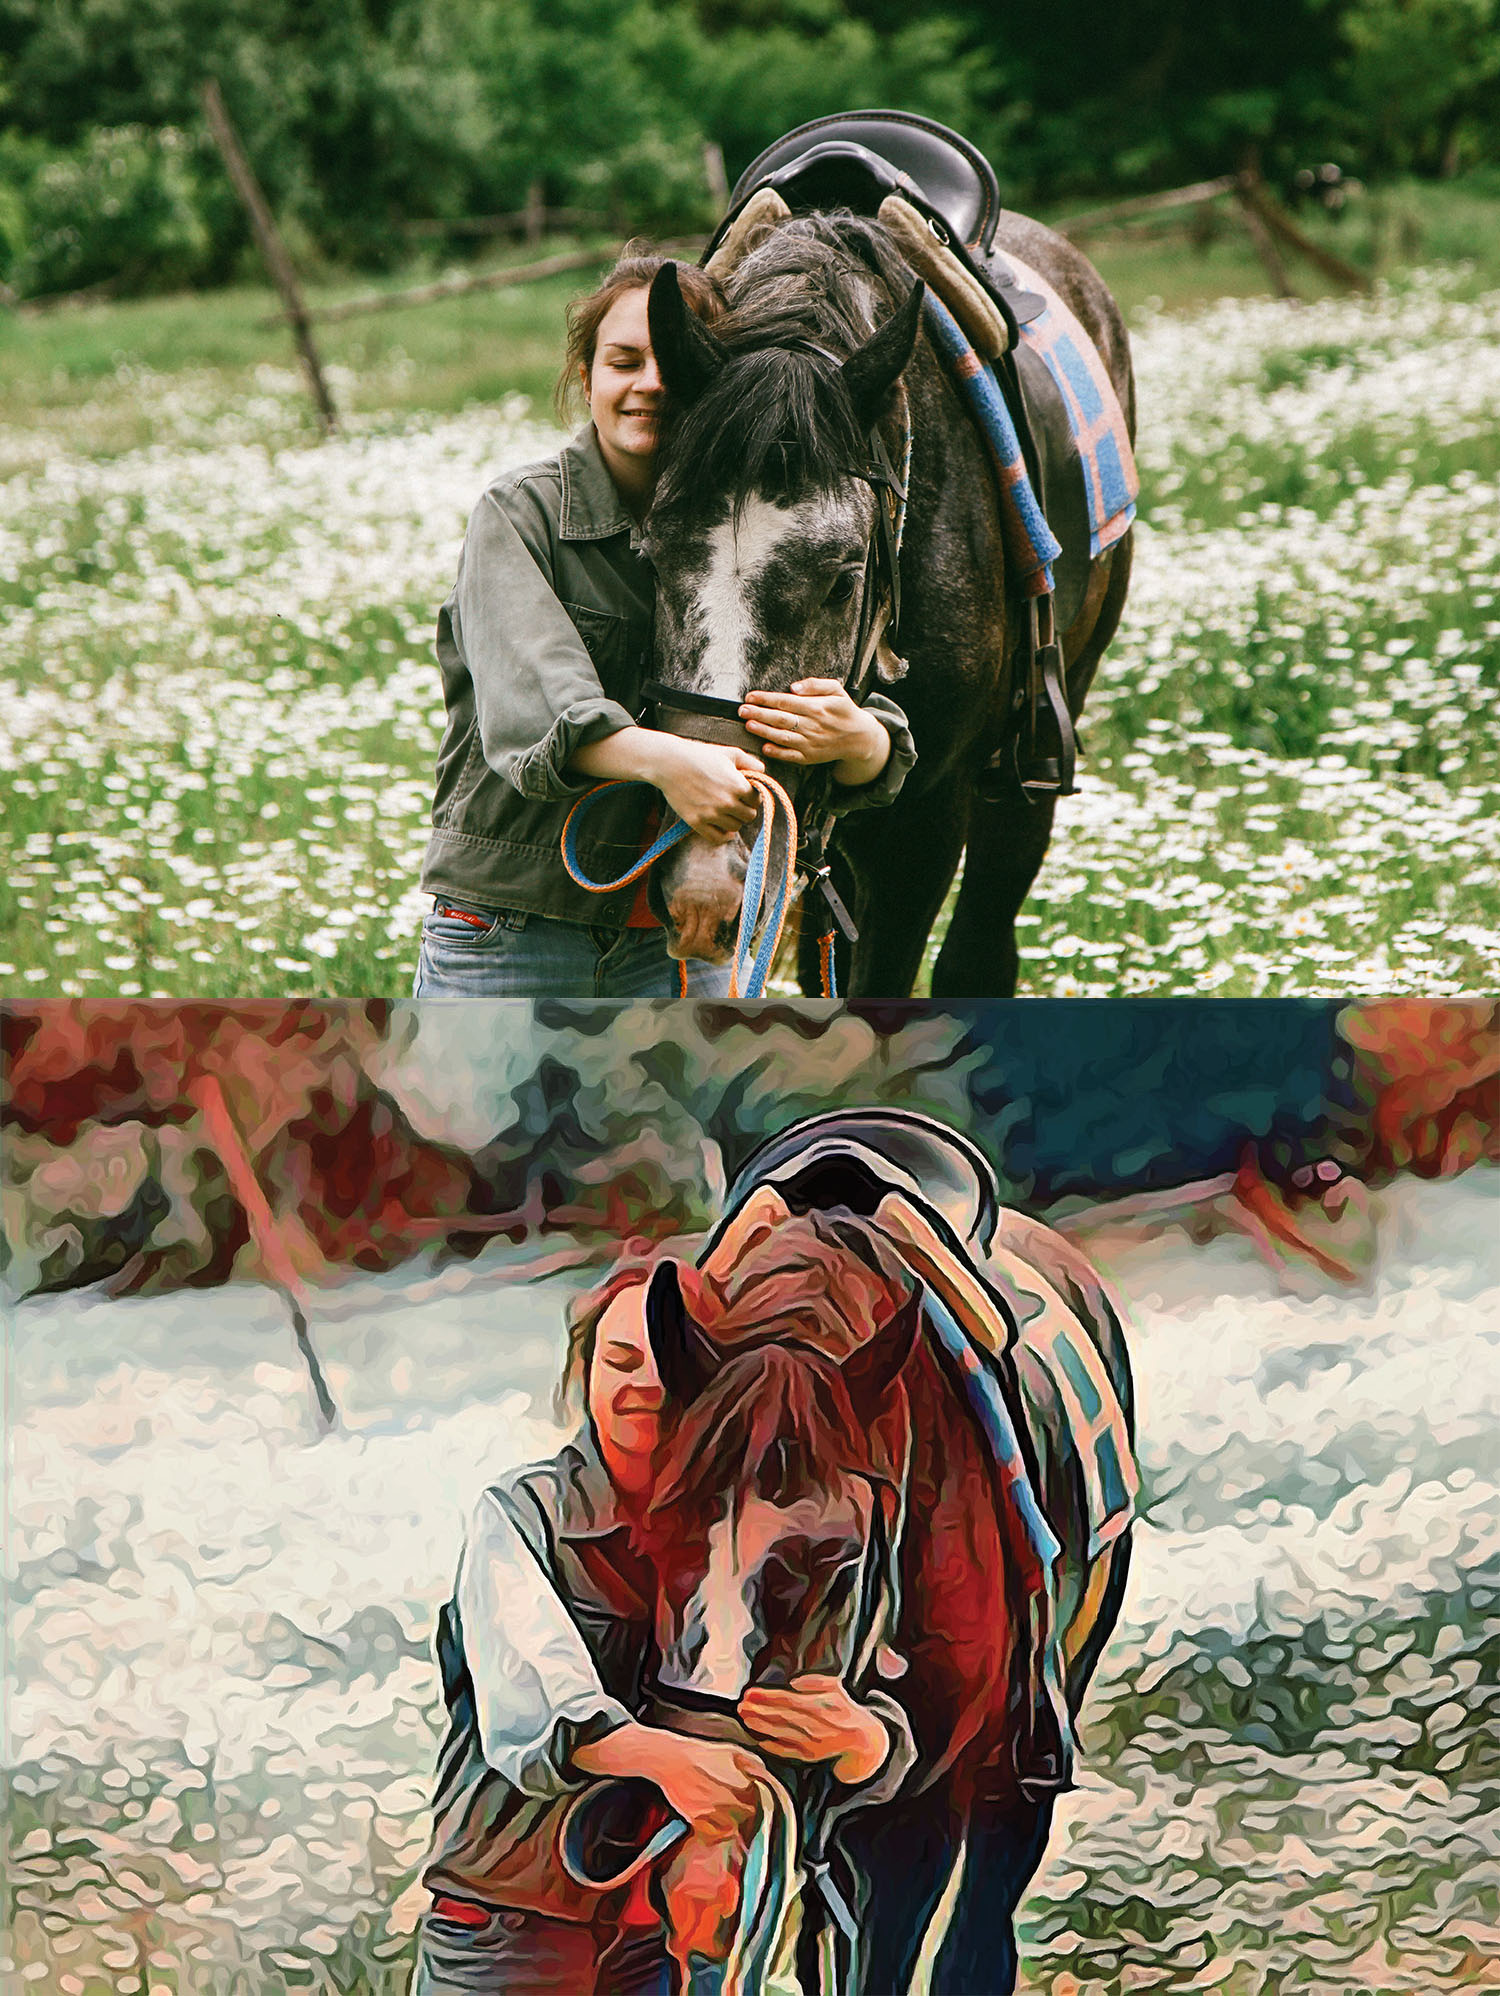 Before and after stylized Image of a woman walking with a horse, hugging its face